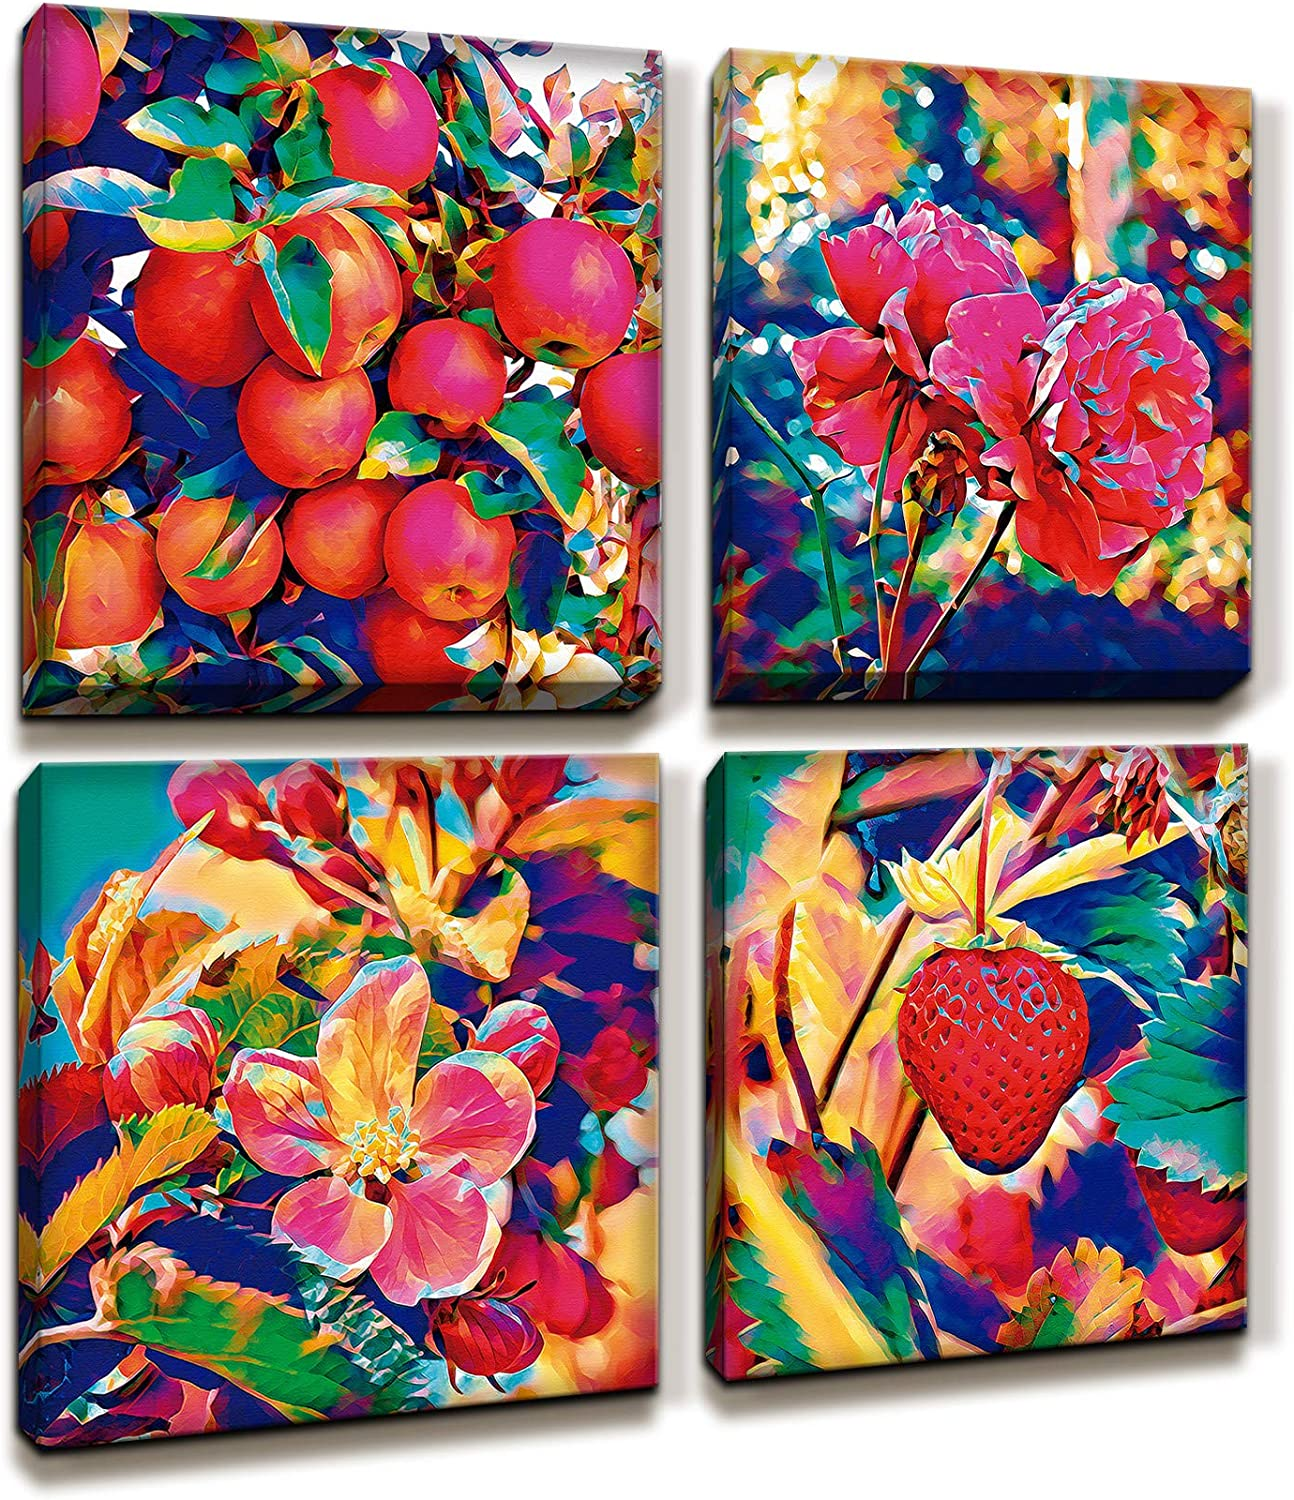 MARG Wall Decorations for Living Room, Colorful Fruits Canvas Wall Art, 4 Panels 12x12 inch/Piece, Home Decor